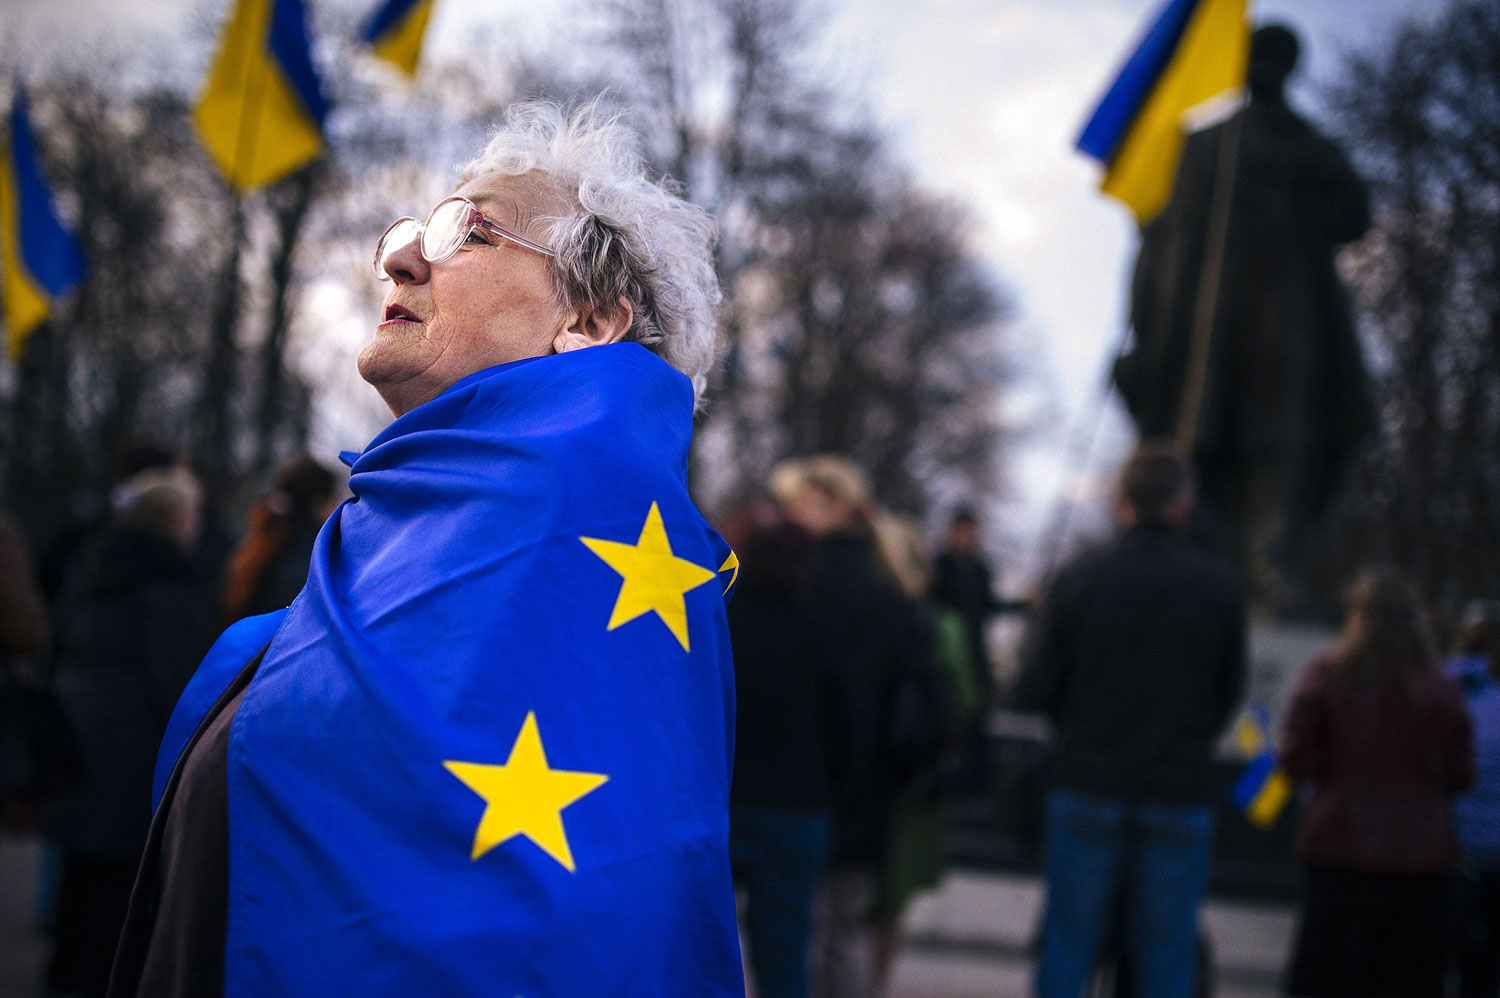 An elderly woman wrapped with an European Union flag attends a pro-Ukraine rally in the eastern Ukrainian city of Lugansk on April 15, 2014.